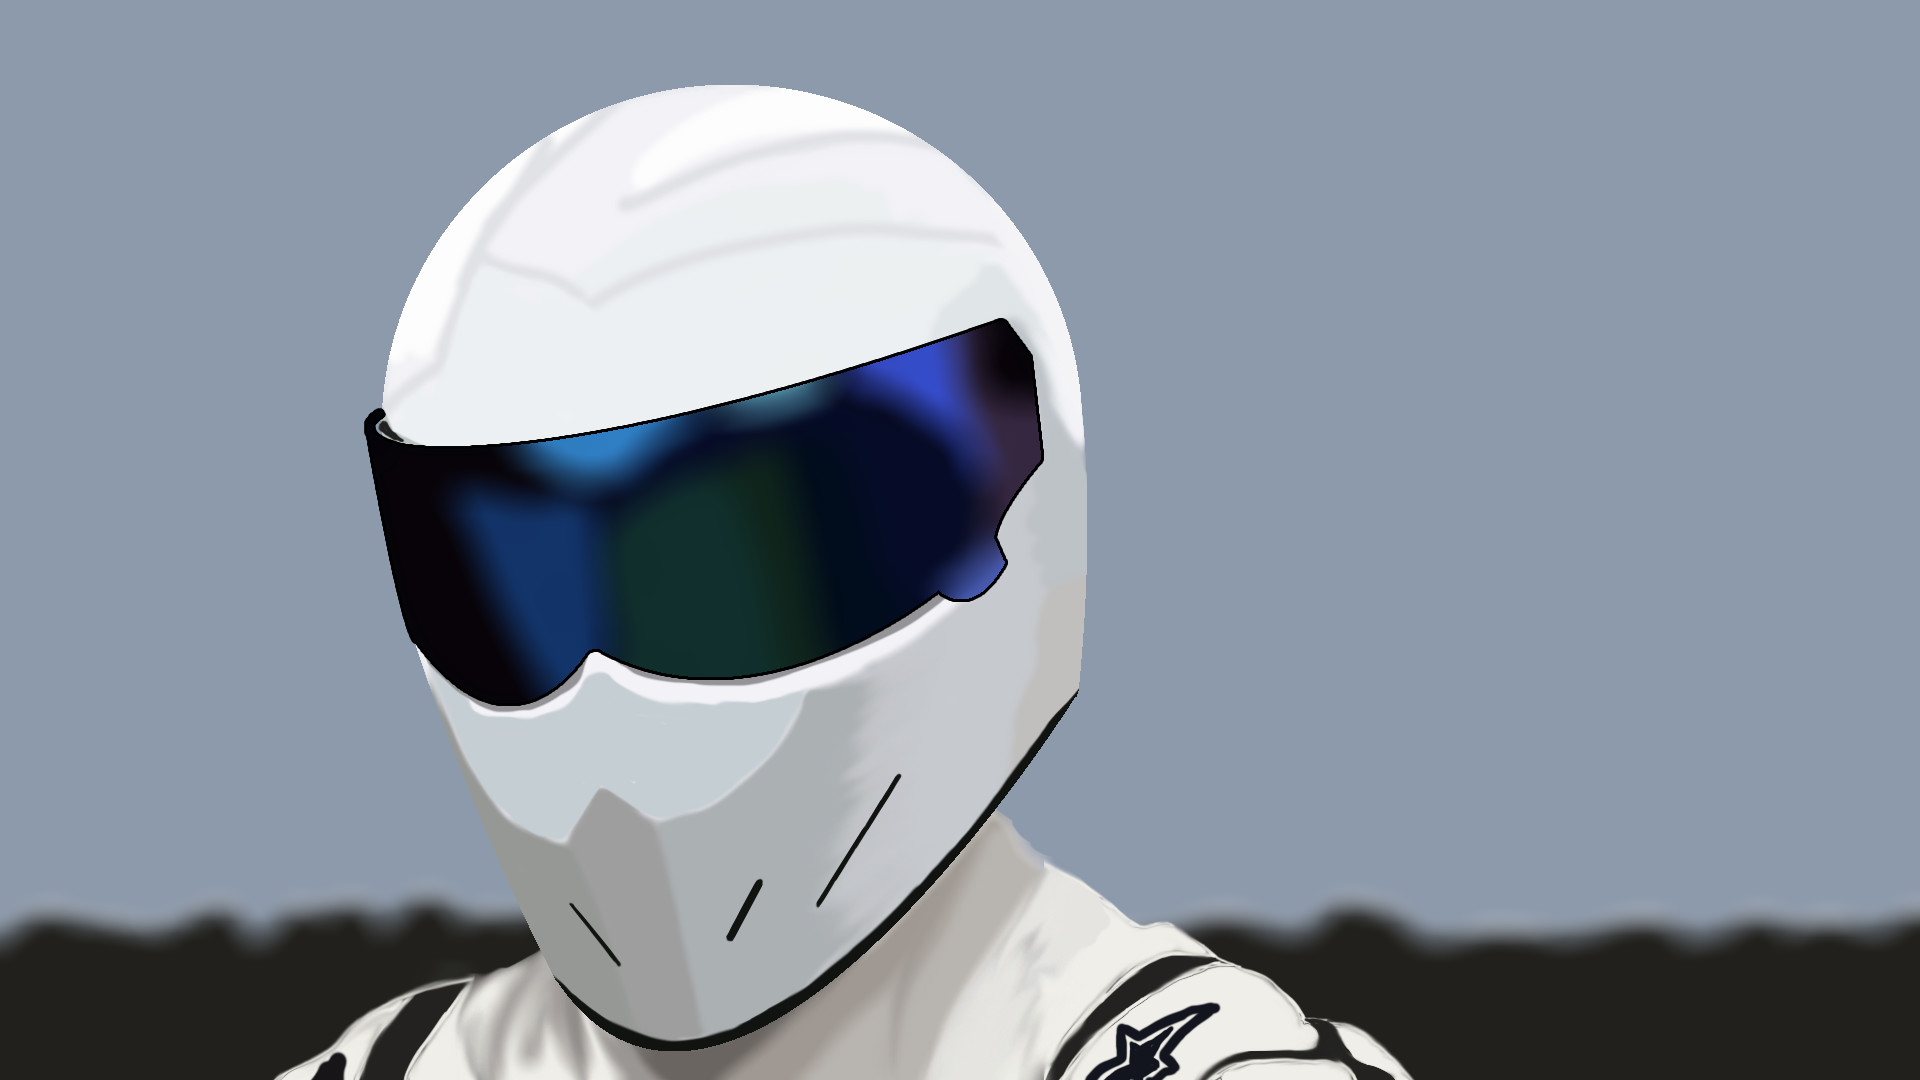 1920x1080 (Top Gear) by MrIDrawThings The Stig! (Top Gear) by MrIDrawThings